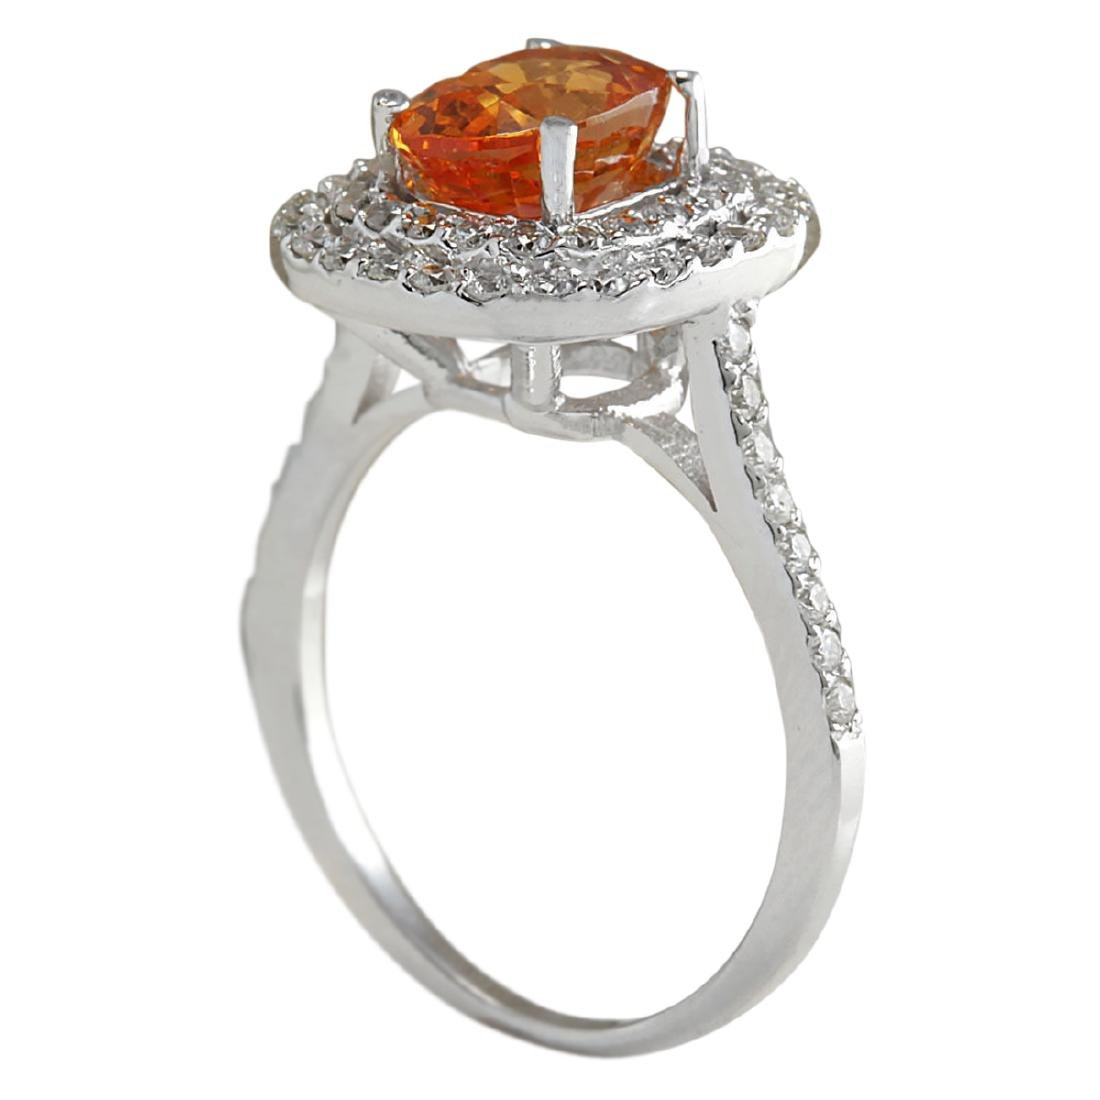 3.13 CTW Natural Orange Sapphire And Diamond Ring In18K - 3